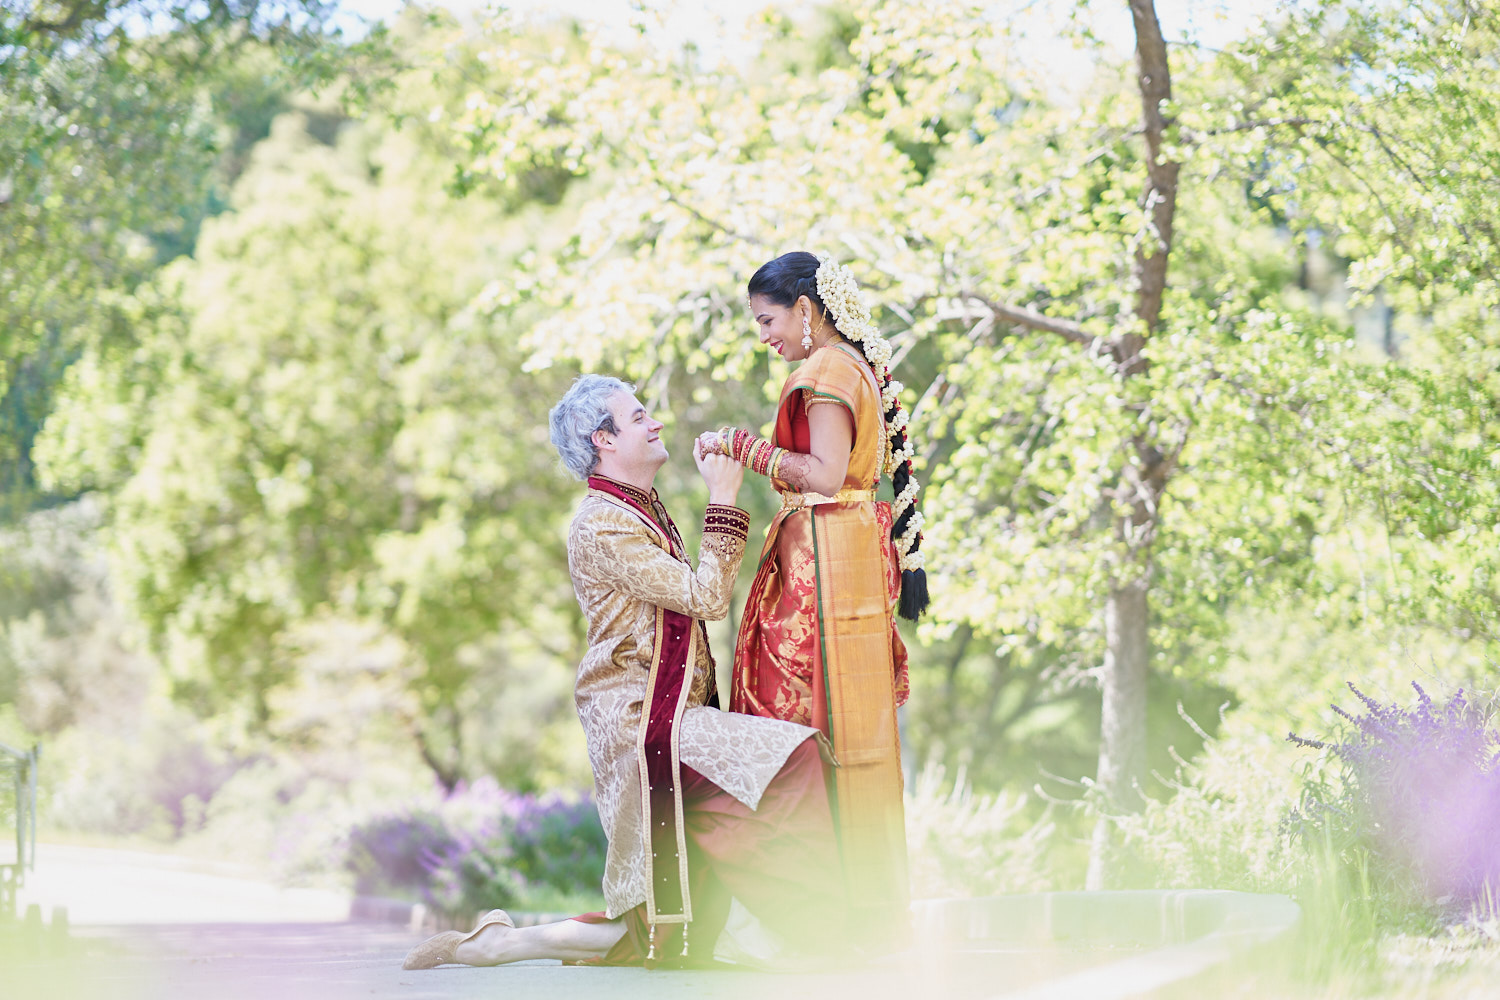 Couple Goals - Groom kneeling down in front of his bride is still in fashion and super cute. Don't you agree?